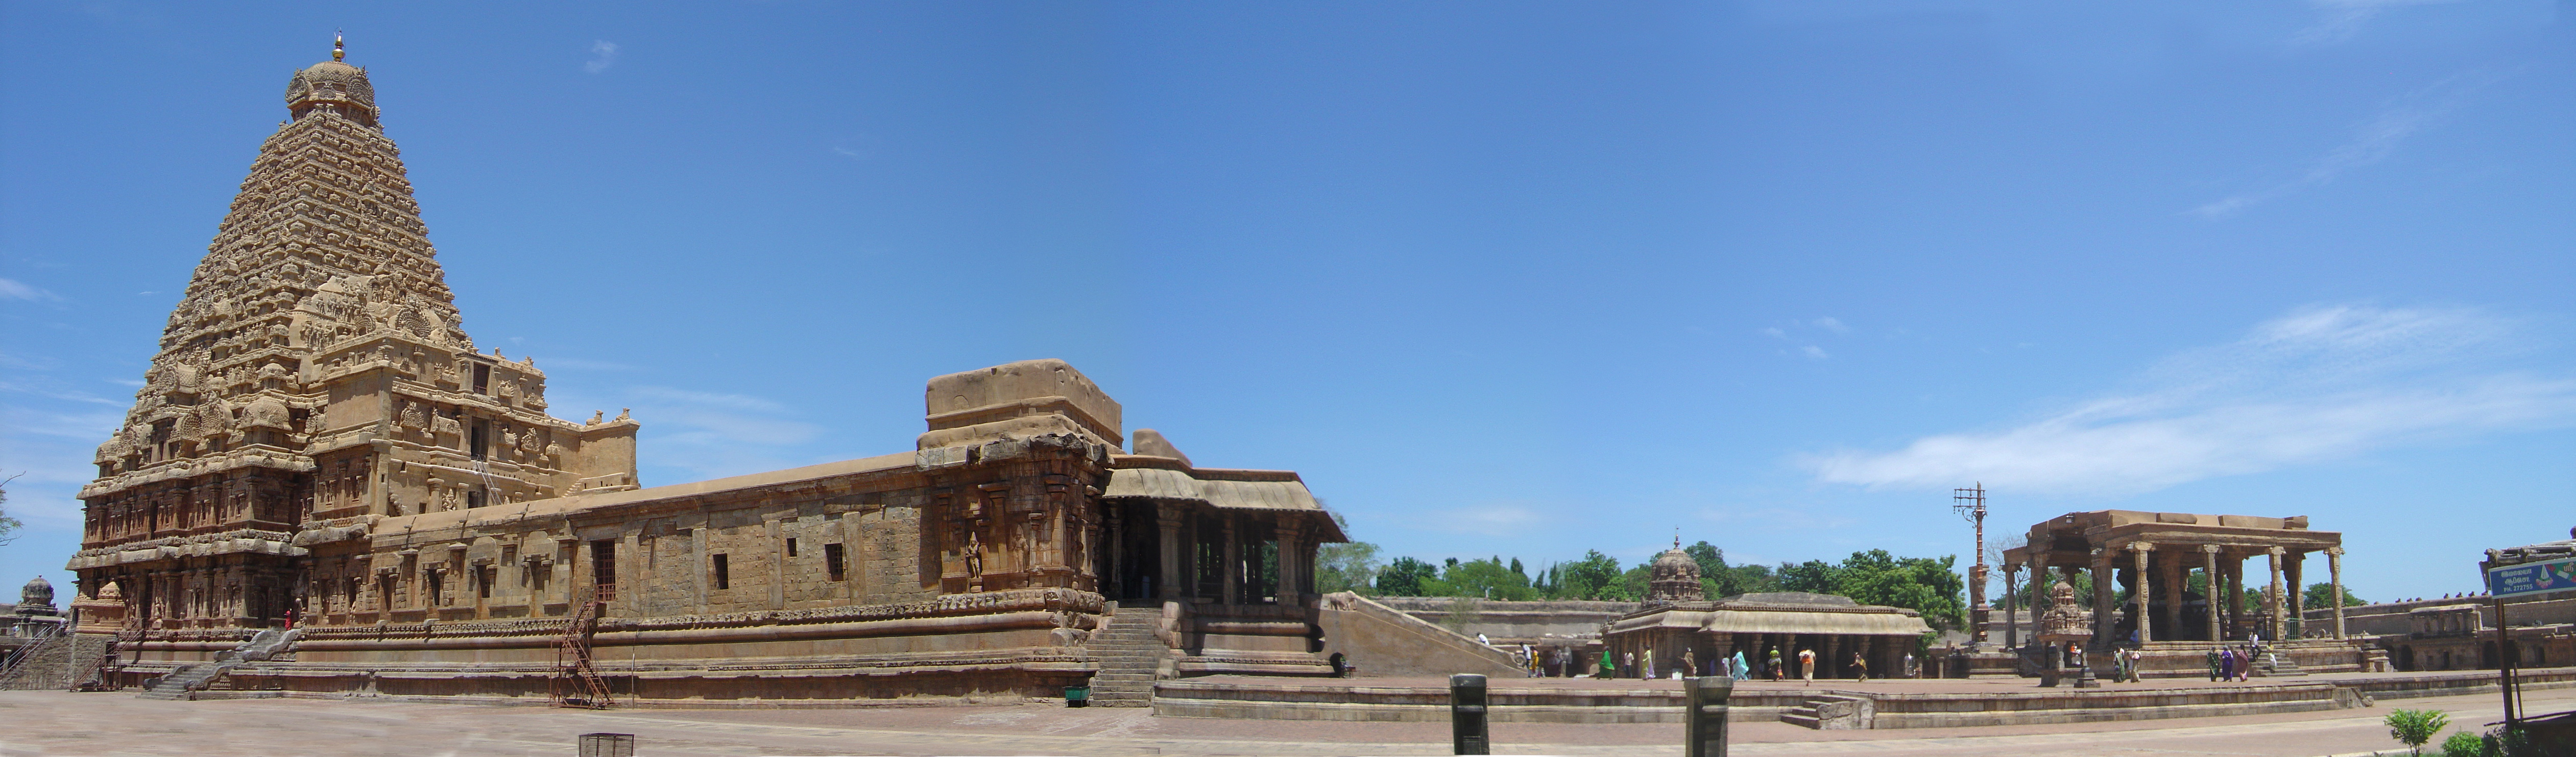 Panorama of the temple